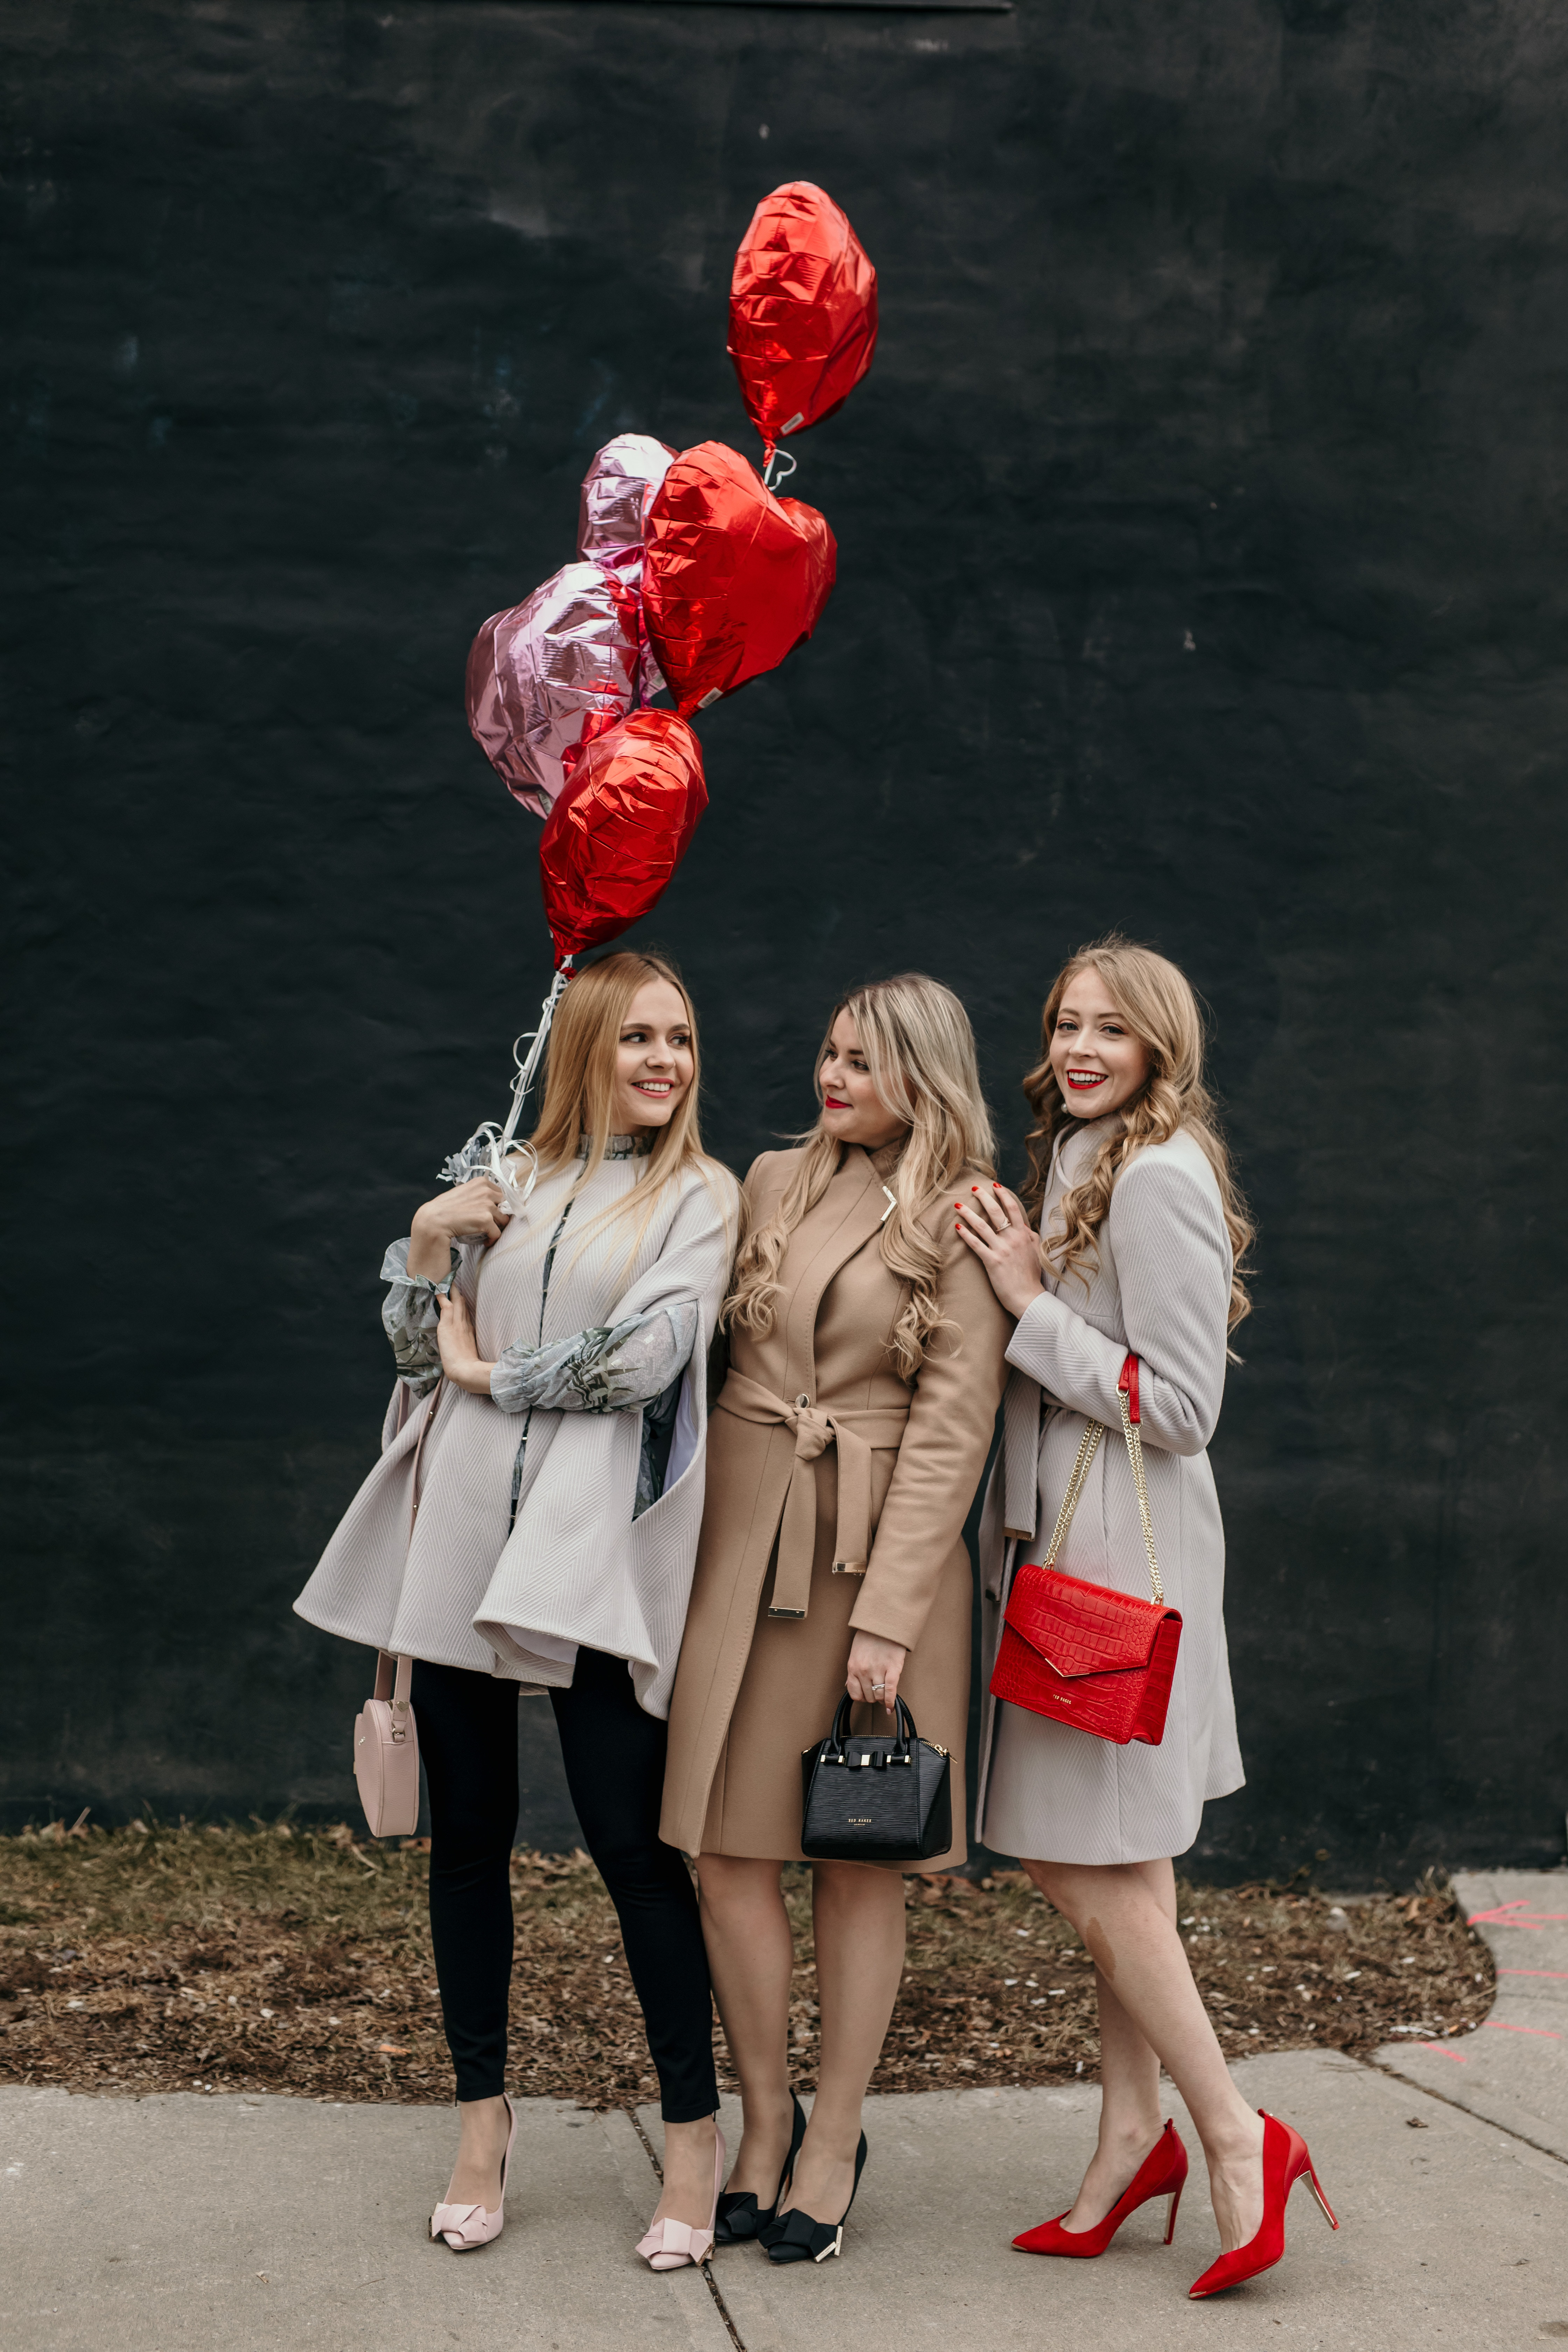 Ted Baker Galentine's Day Looks: wool coats and capes, heart handbags, pops of red and elegant dresses.